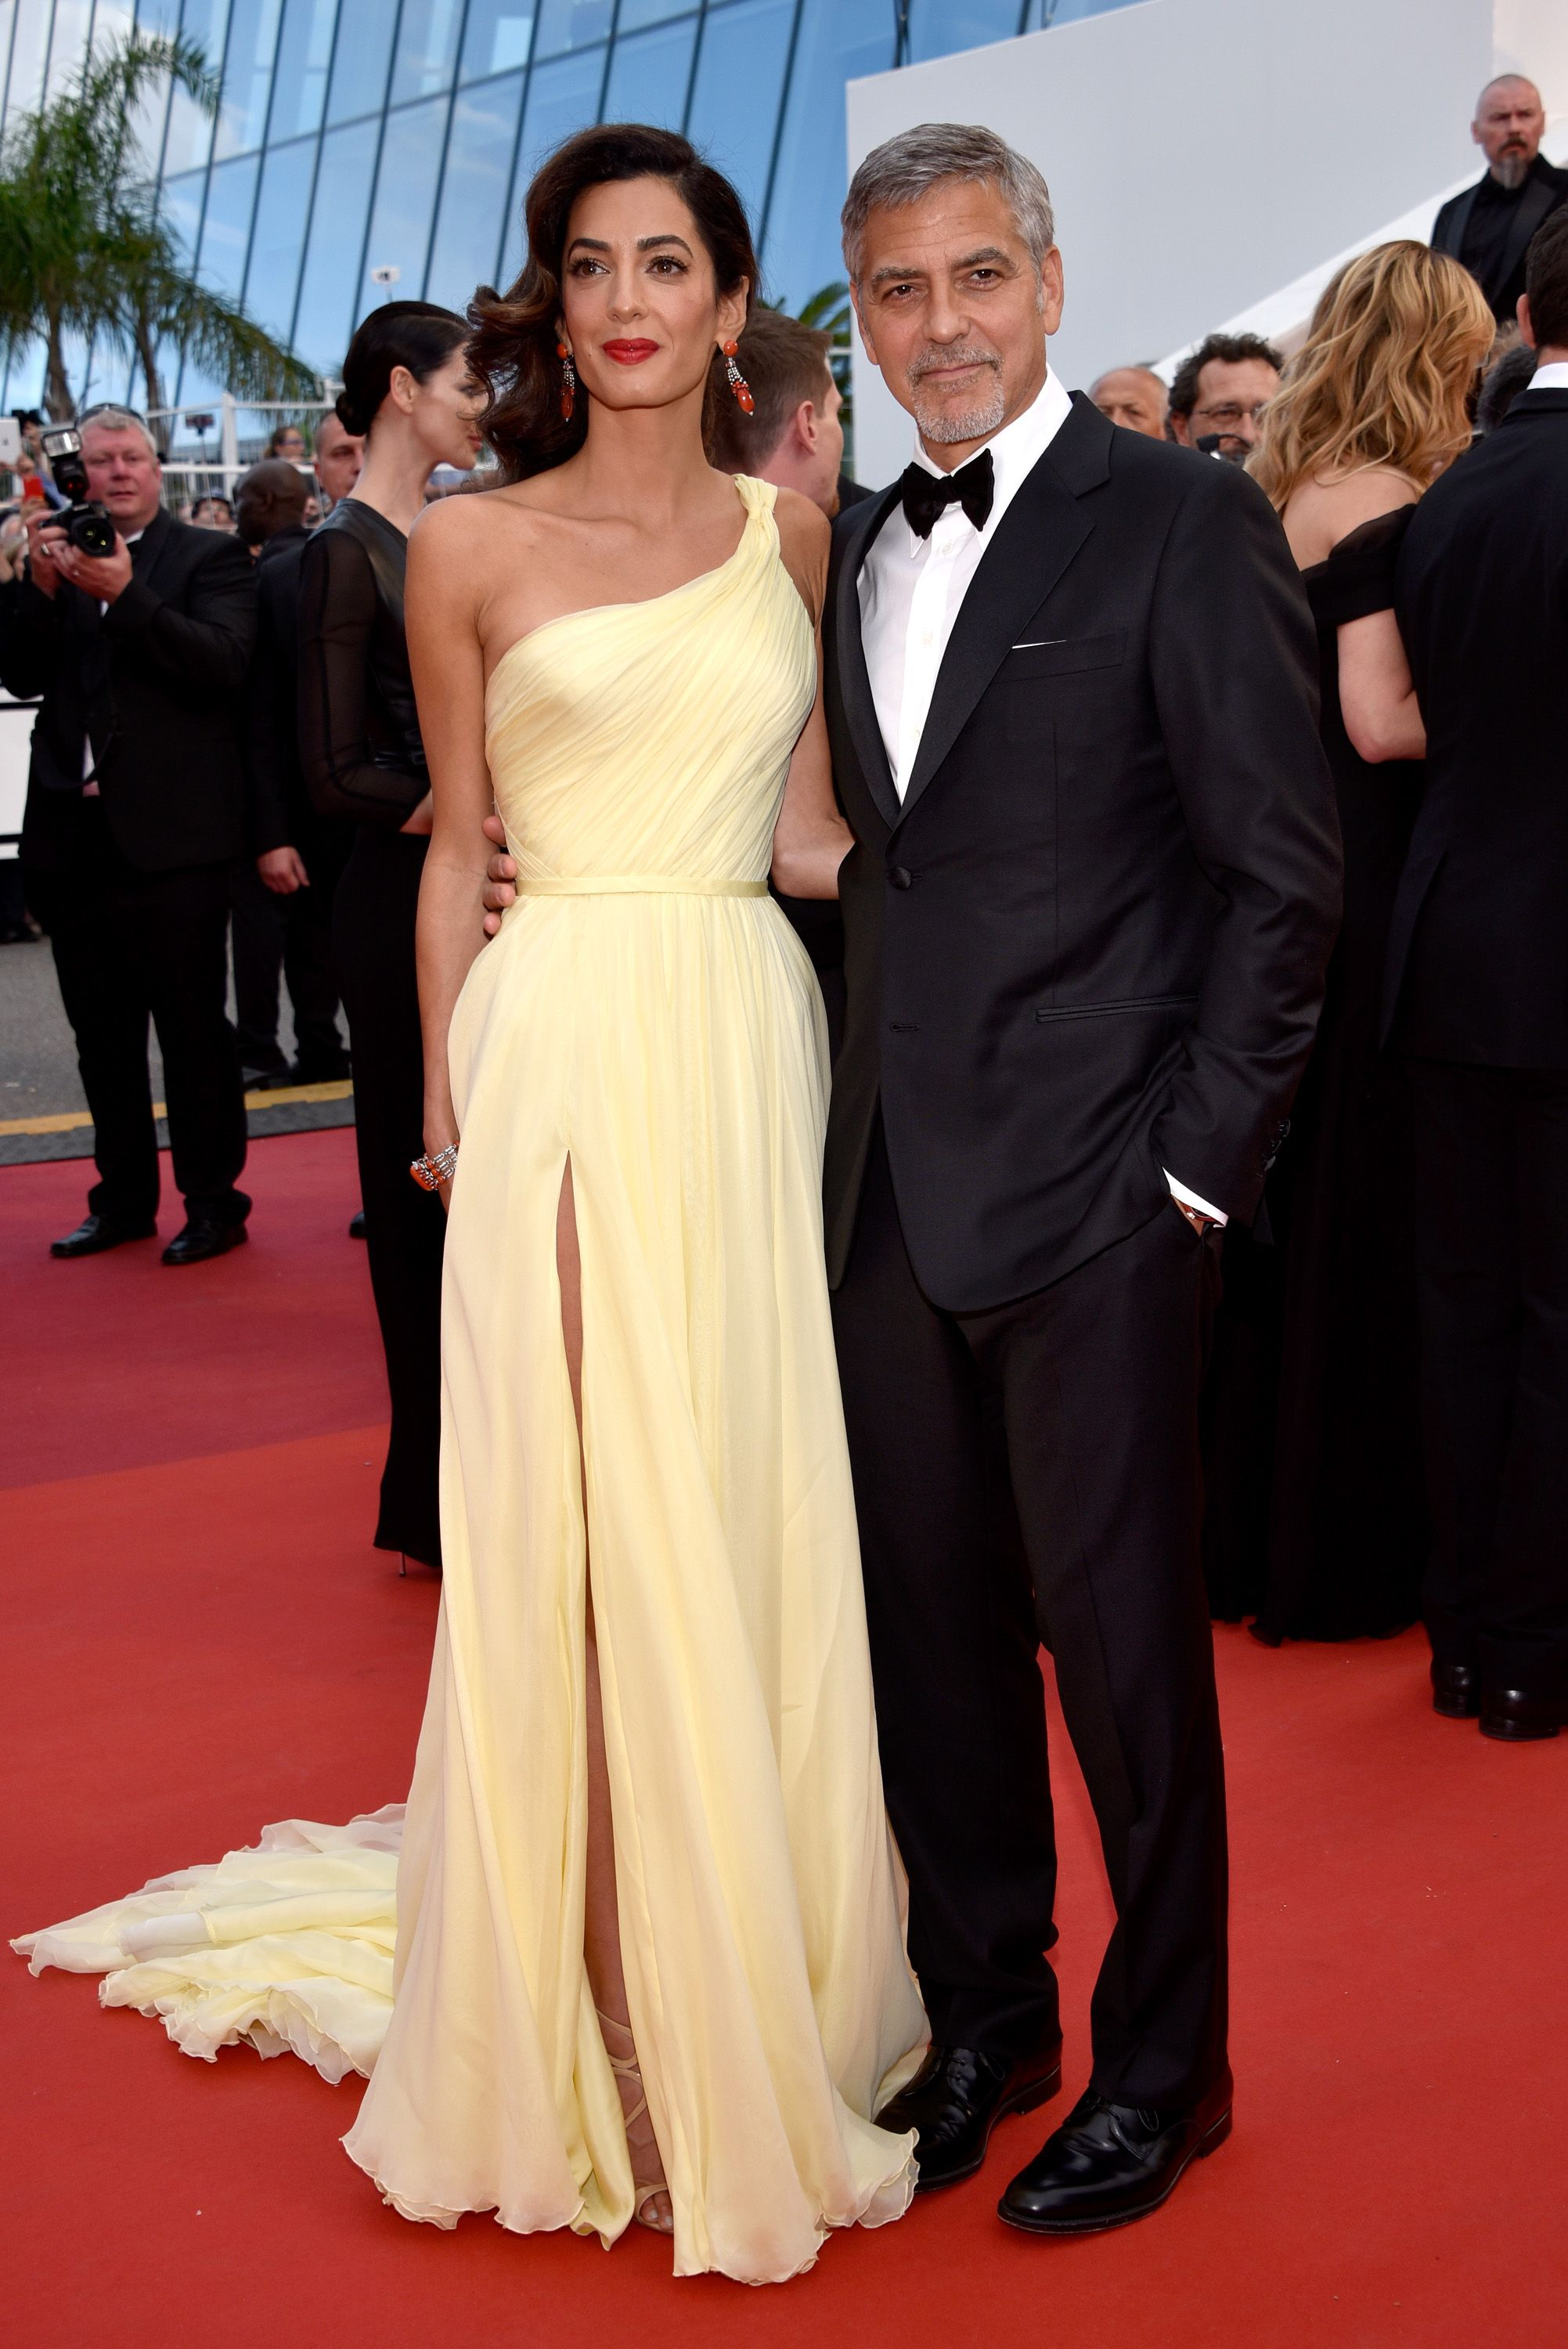 2016 Cannes - George and wife Amal Clooney in yellow Atelier Versace at